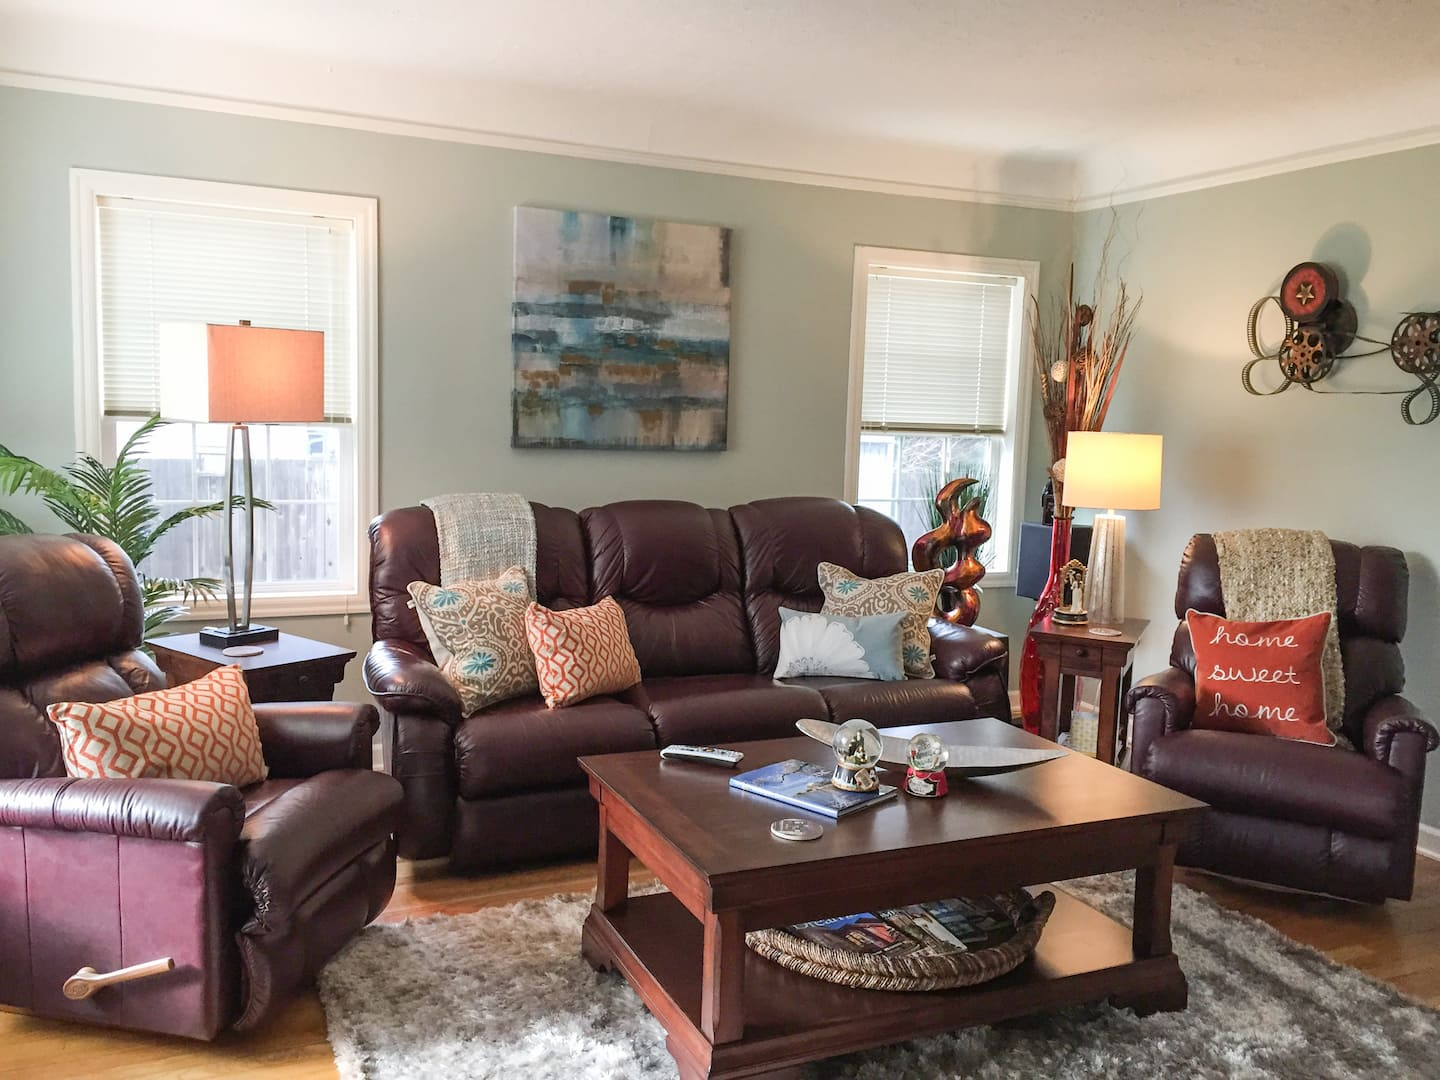 An eclectic living room scene